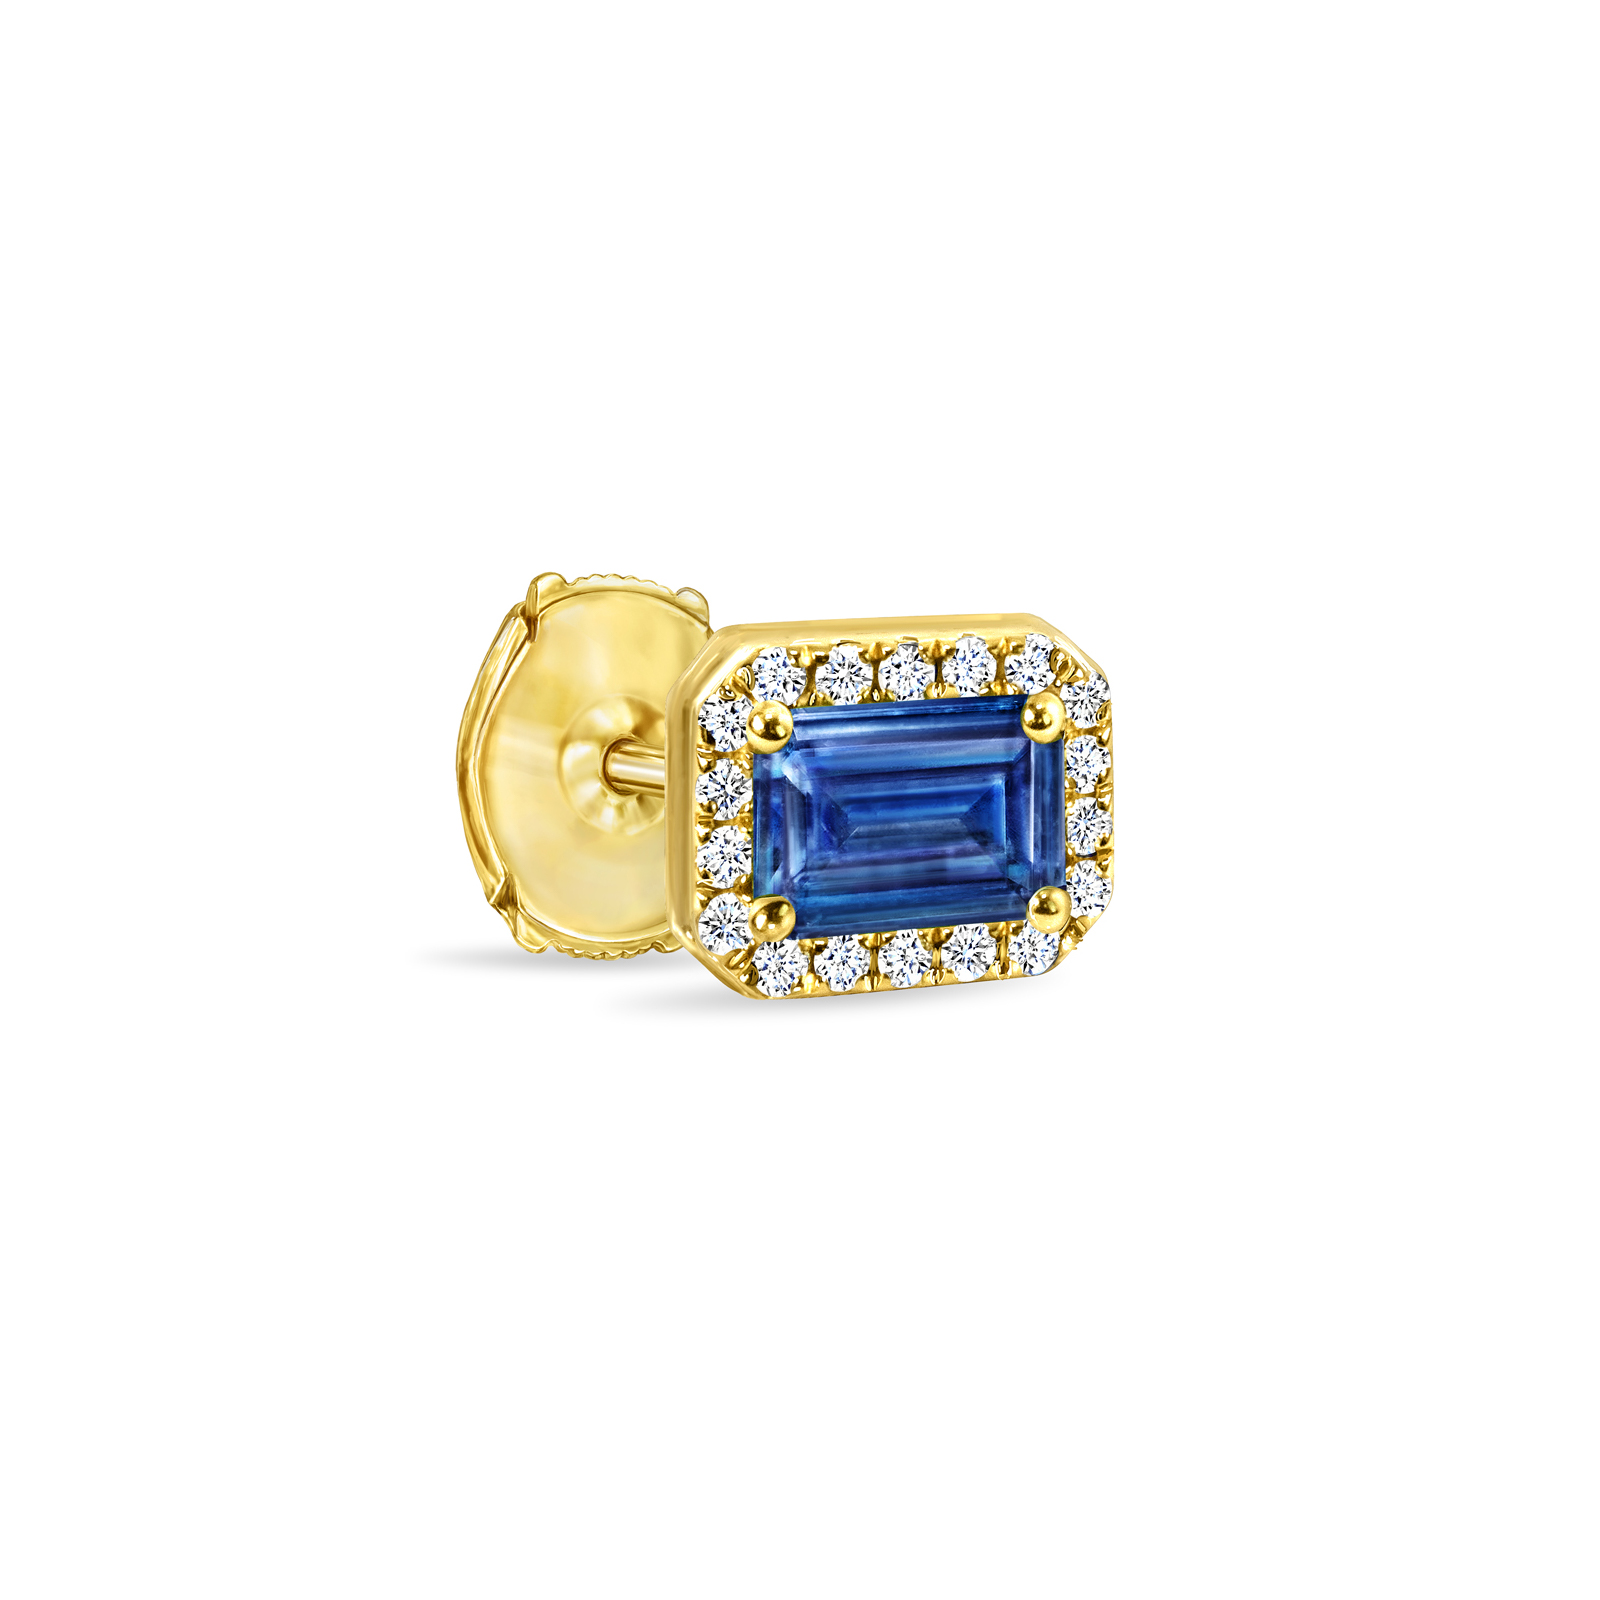 SINGLE PIN-CLEOPATRA-SAPPHIRE-Y